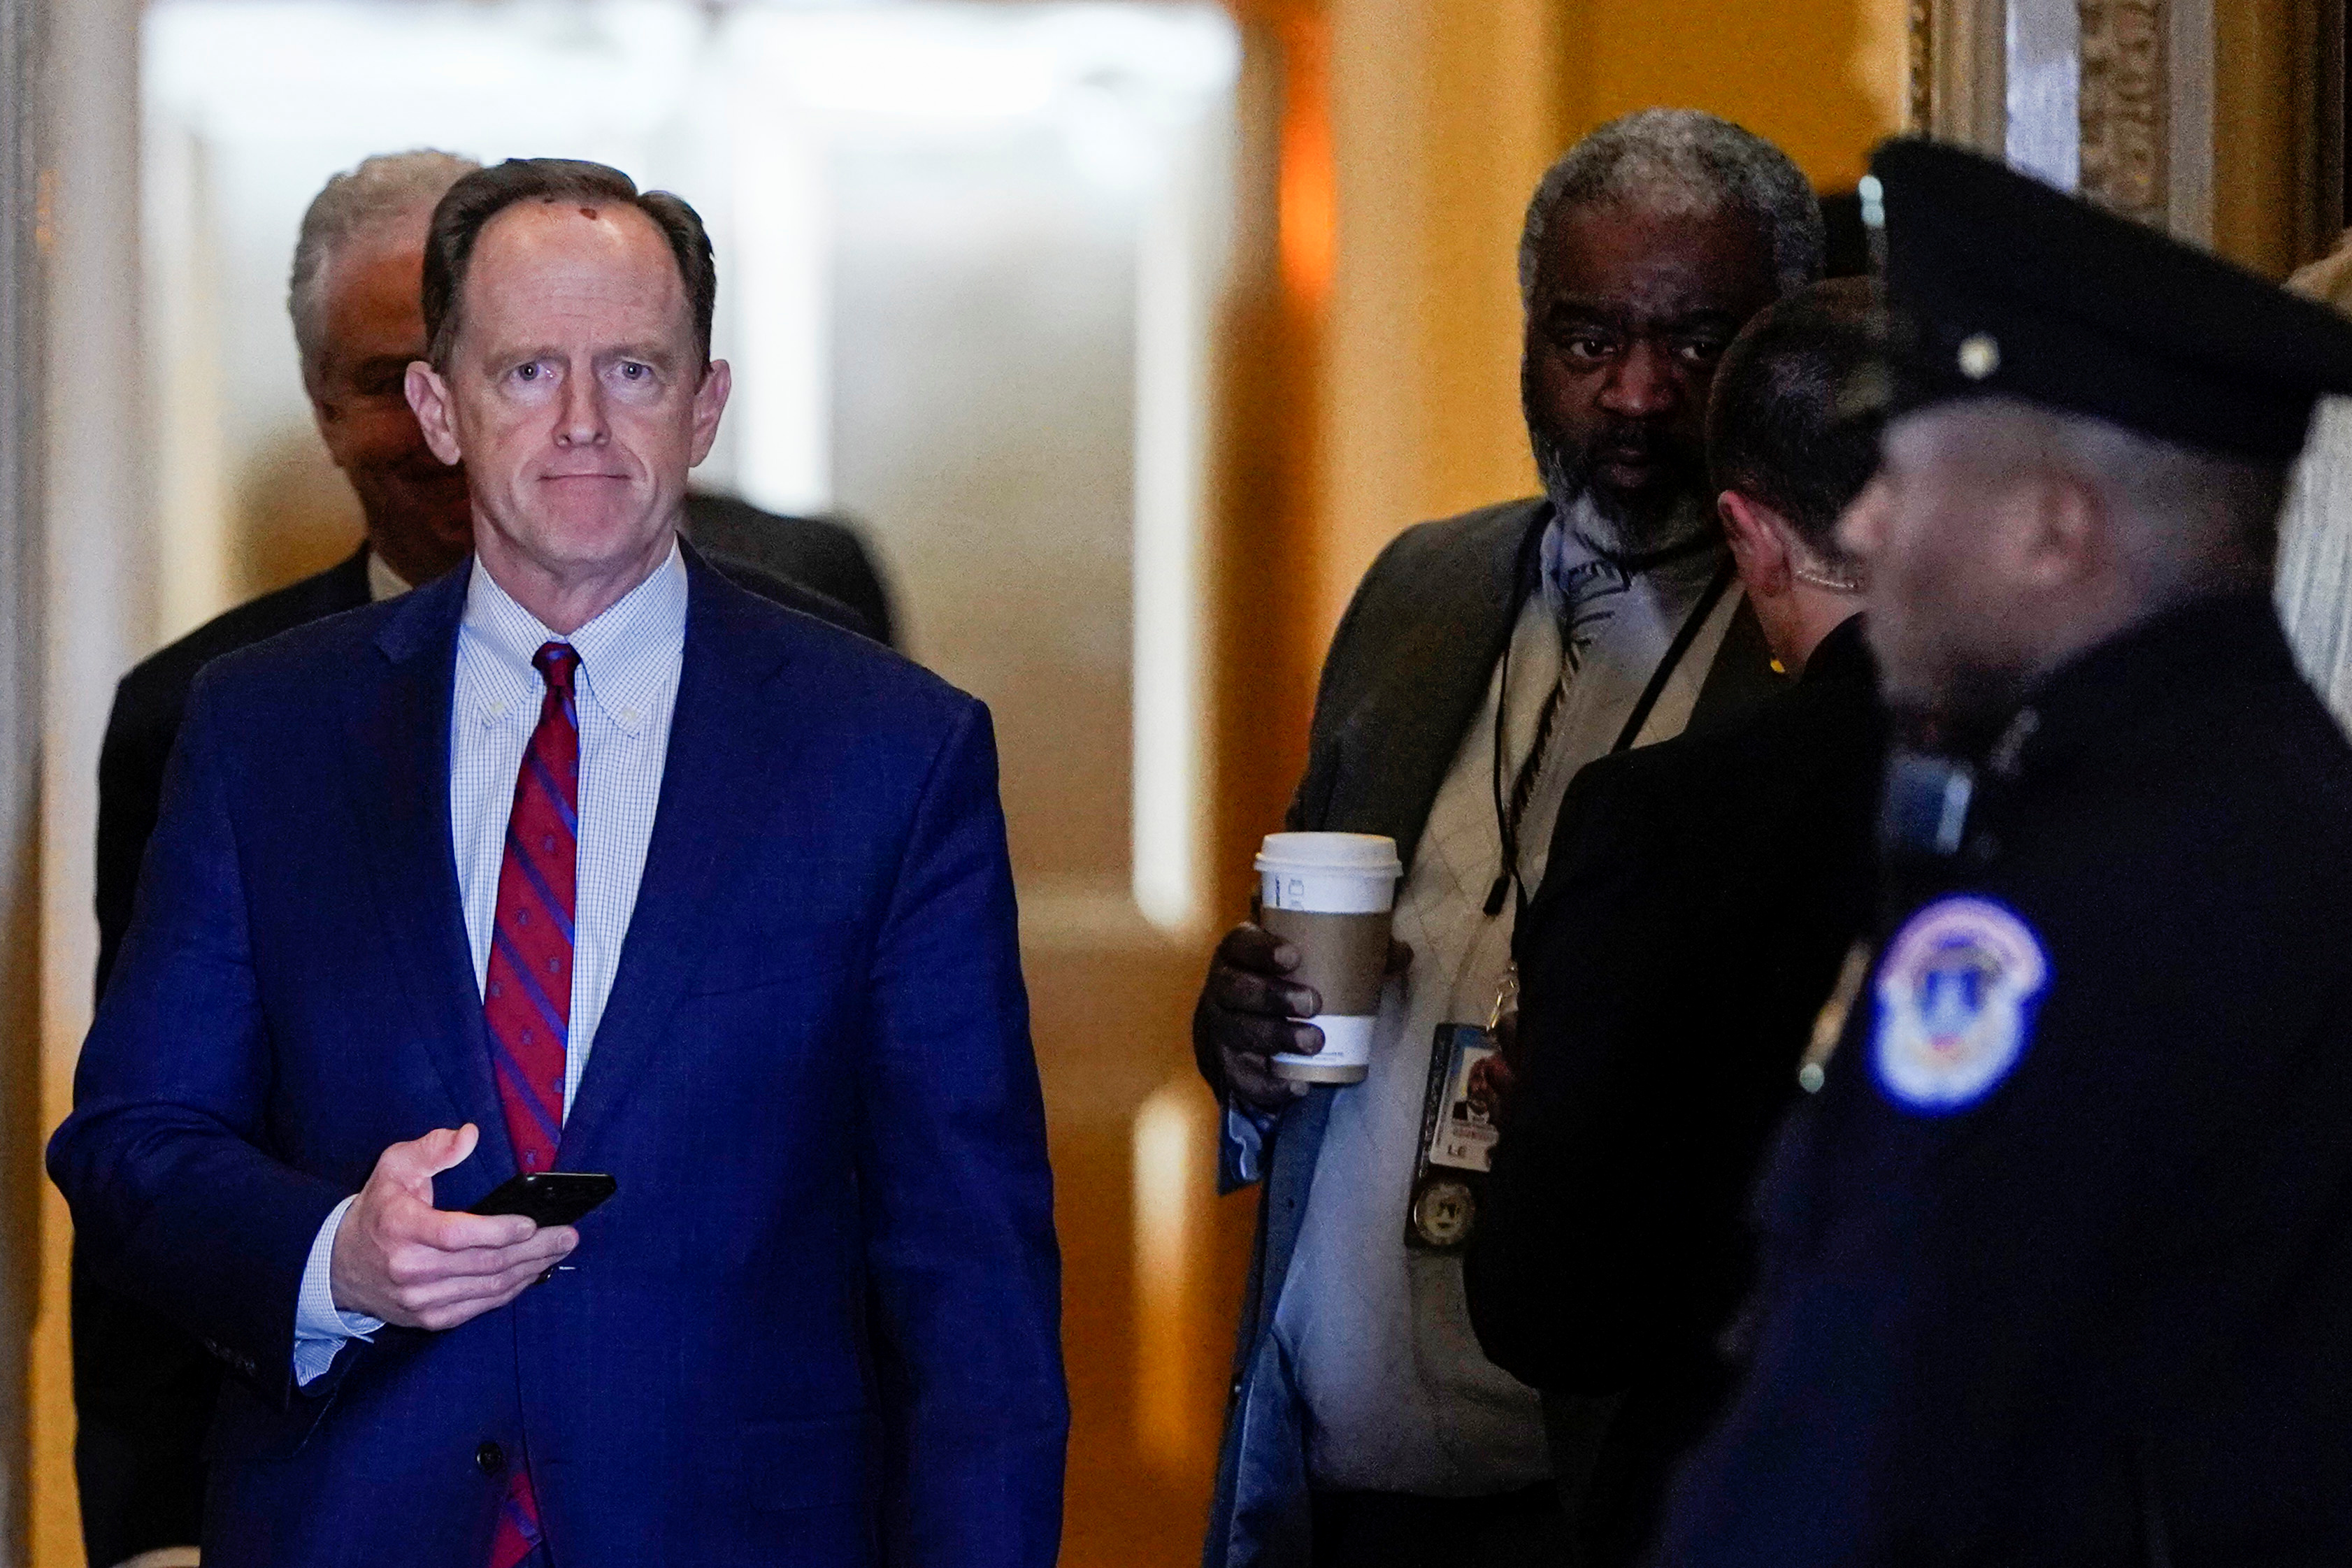 Senator Pat Toomey (R-PA) returns to the Senate Chamber after a break as the impeachment trial of U.S. President Donald Trump continues in Washington, U.S., Jan. 23, 2020. REUTERS/Joshua Roberts